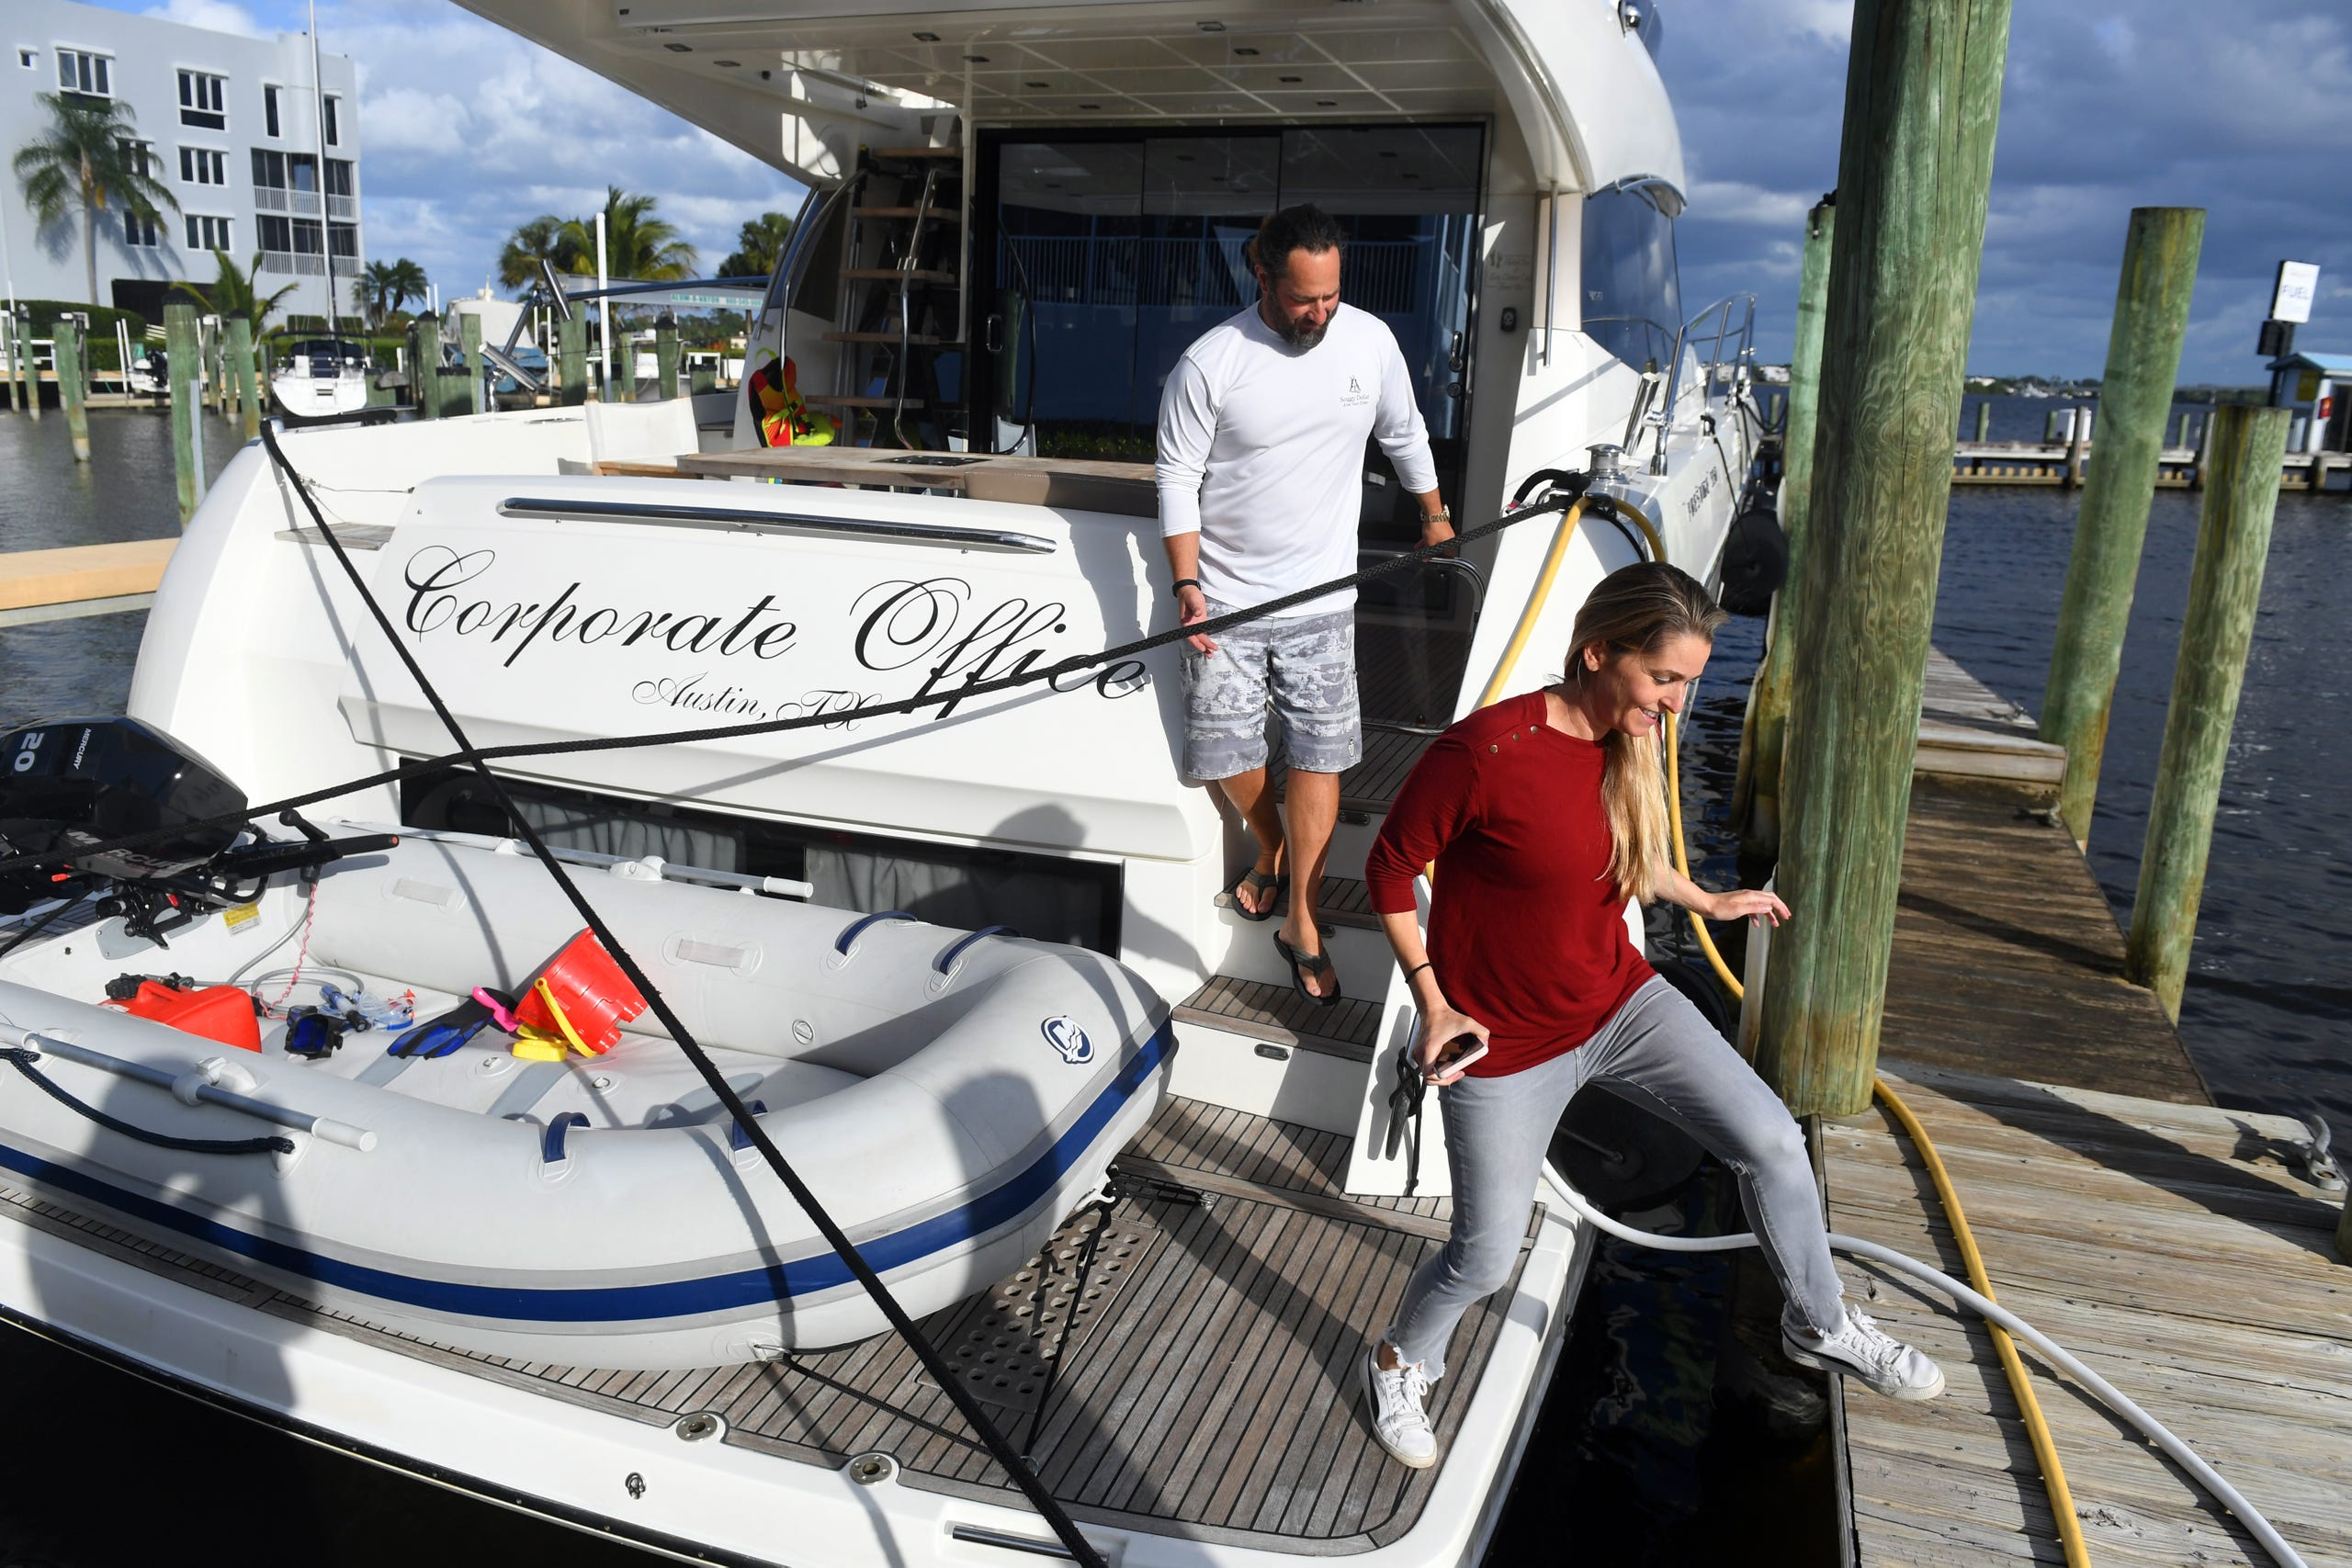 Austin and Jenny Cameron, of Austin, Texas, took over ownership of Meridian Marina in Palm City in January. The Camerons are planning extensive renovations including repairs to and expansion of the current storage facility, opening a repair shop, boat sales and a waterfront restaurant.